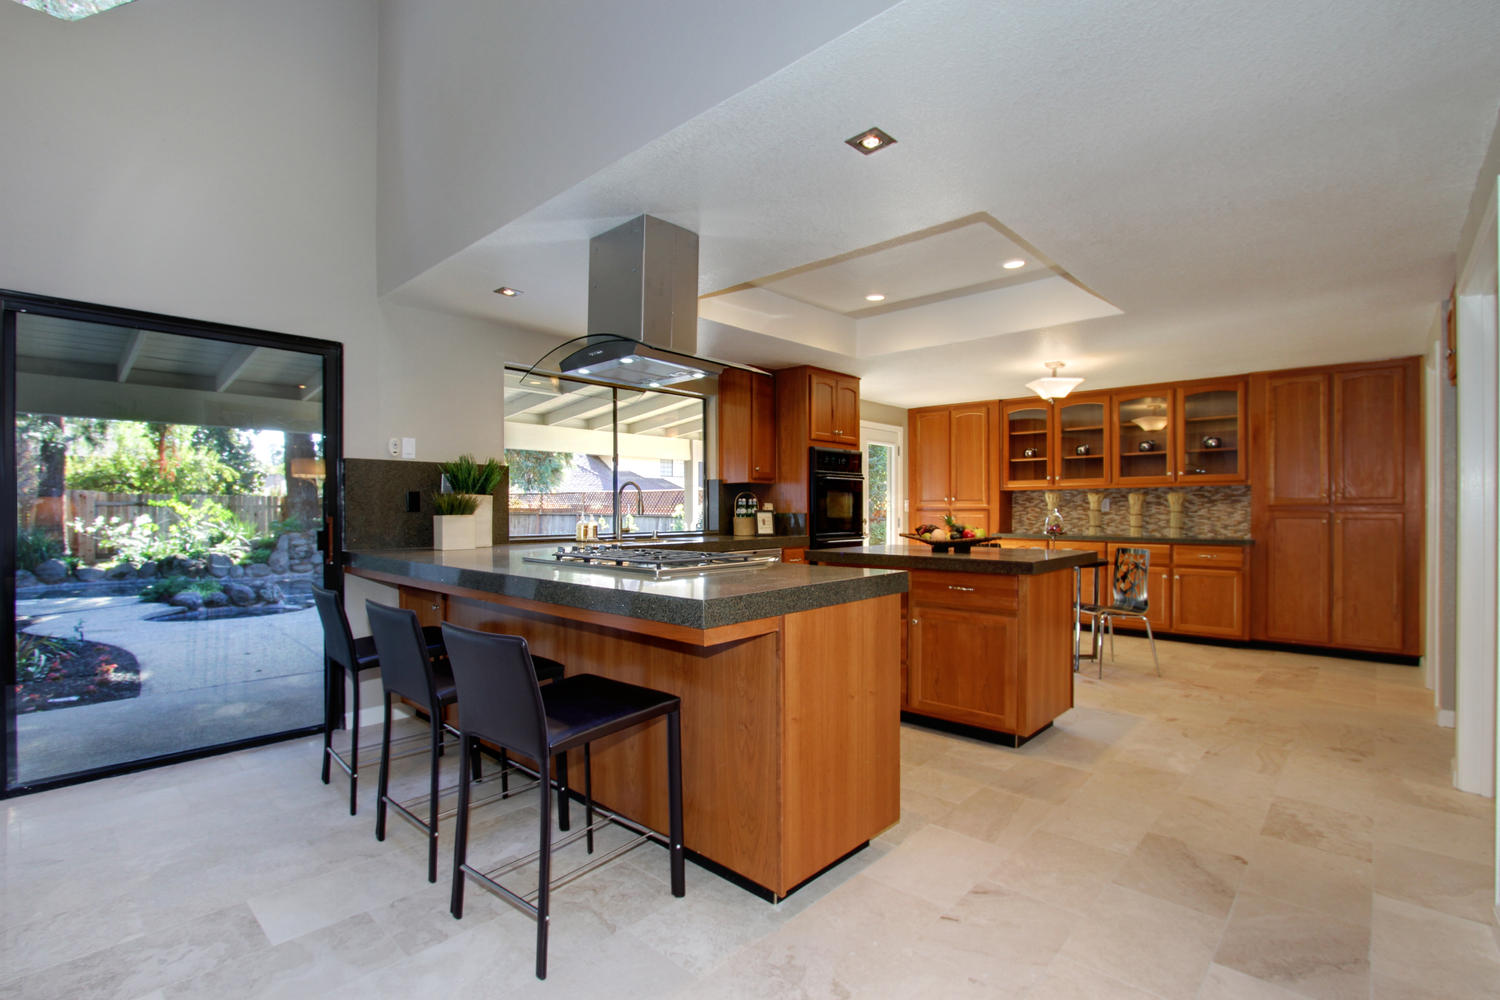 Mid Century Modern Kitchen With Coffered Ceiling February 24 2017 1500 1000